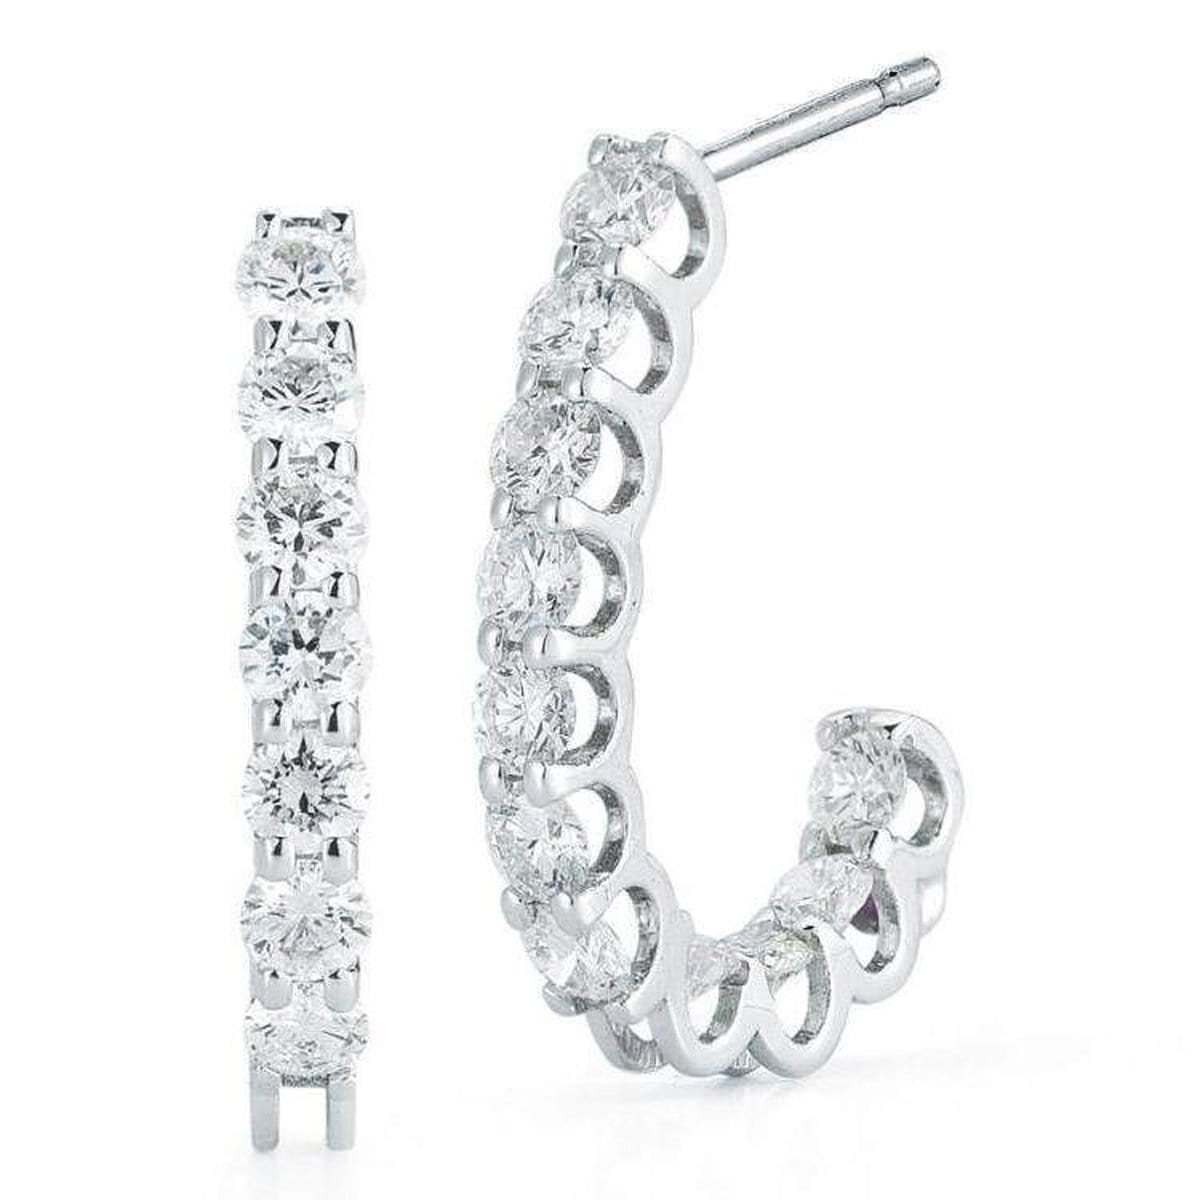 18k White Gold & Diamond Earrings - 000957AWERX0-Roberto Coin-Renee Taylor Gallery